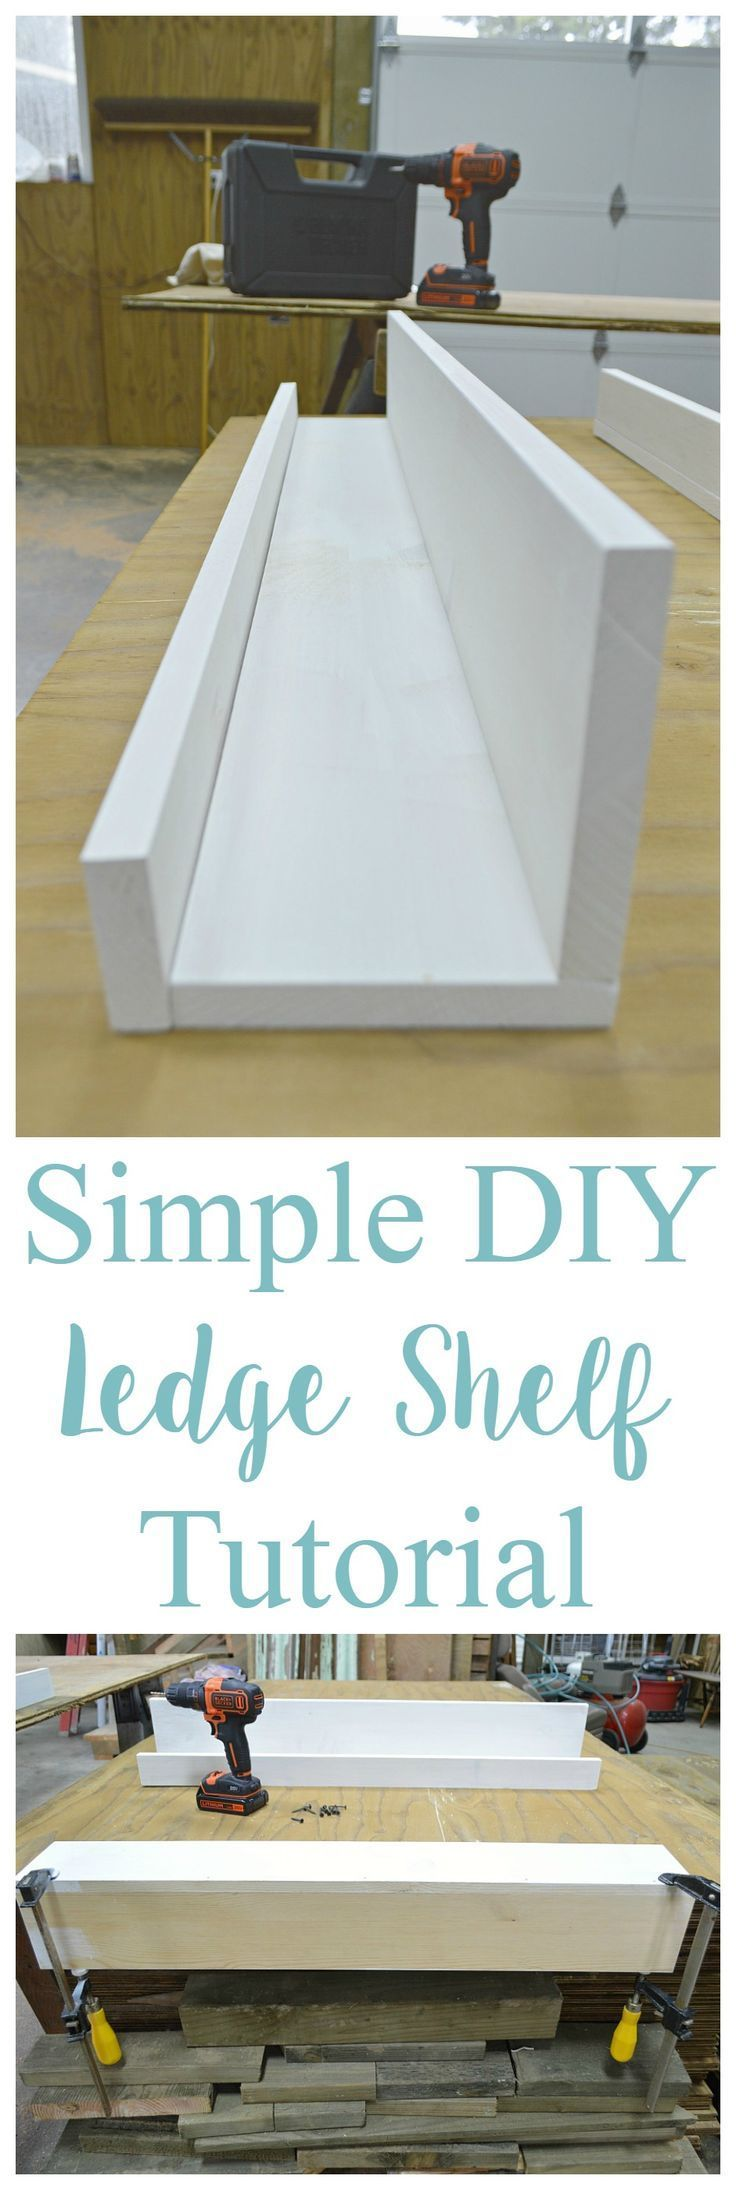 Simple #DIY #project #that #offers #huge #versatility